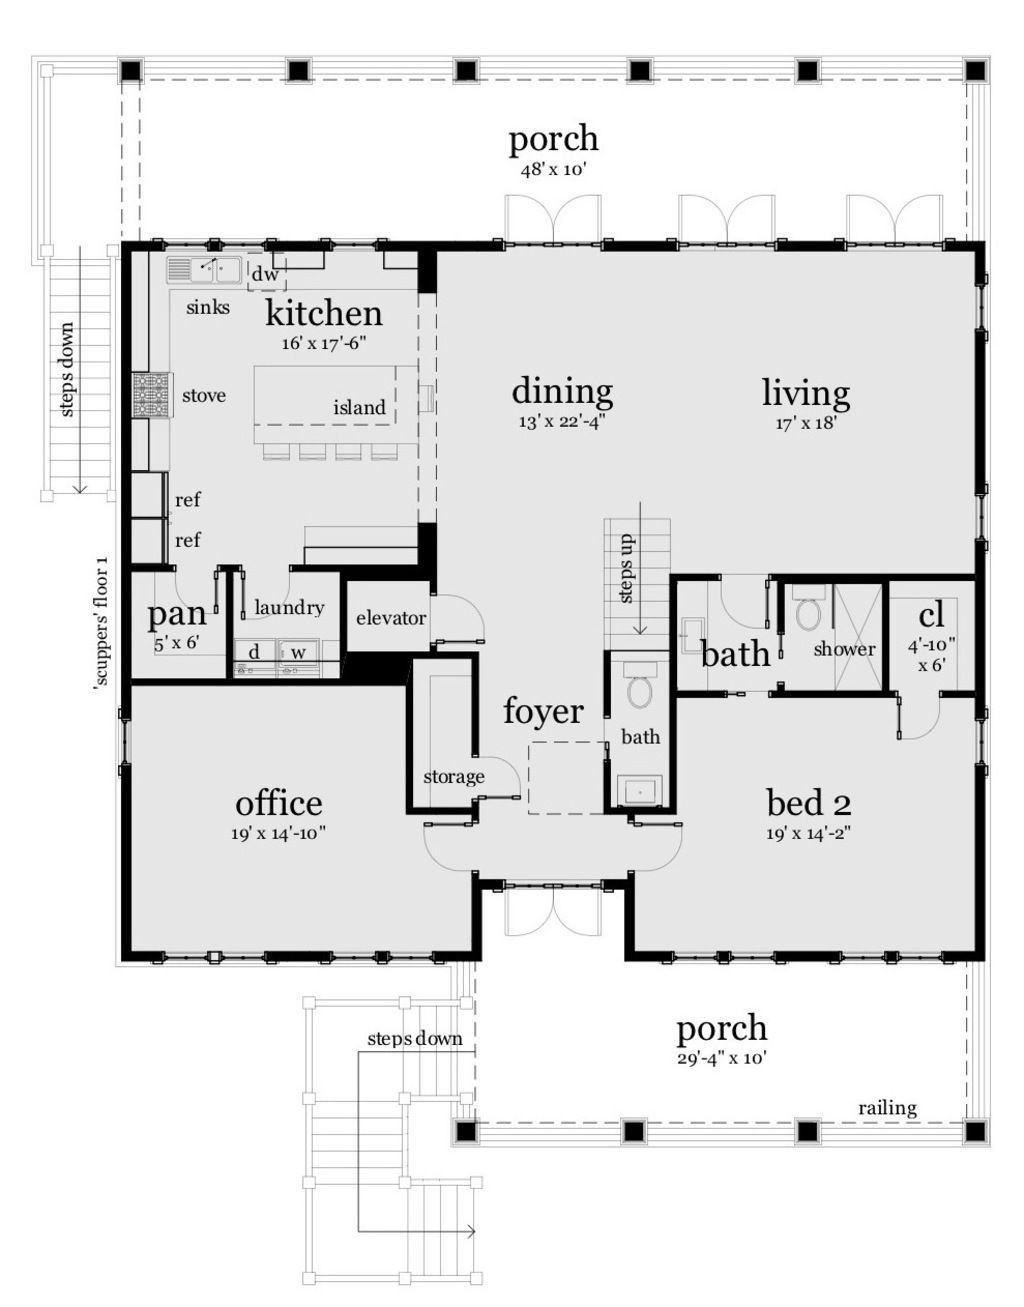 Beach Style House Plan 4 Beds 3 Baths 2810 Sq Ft Plan 901 114 Rectangle House Plans Beach Style House Plans Coastal House Plans